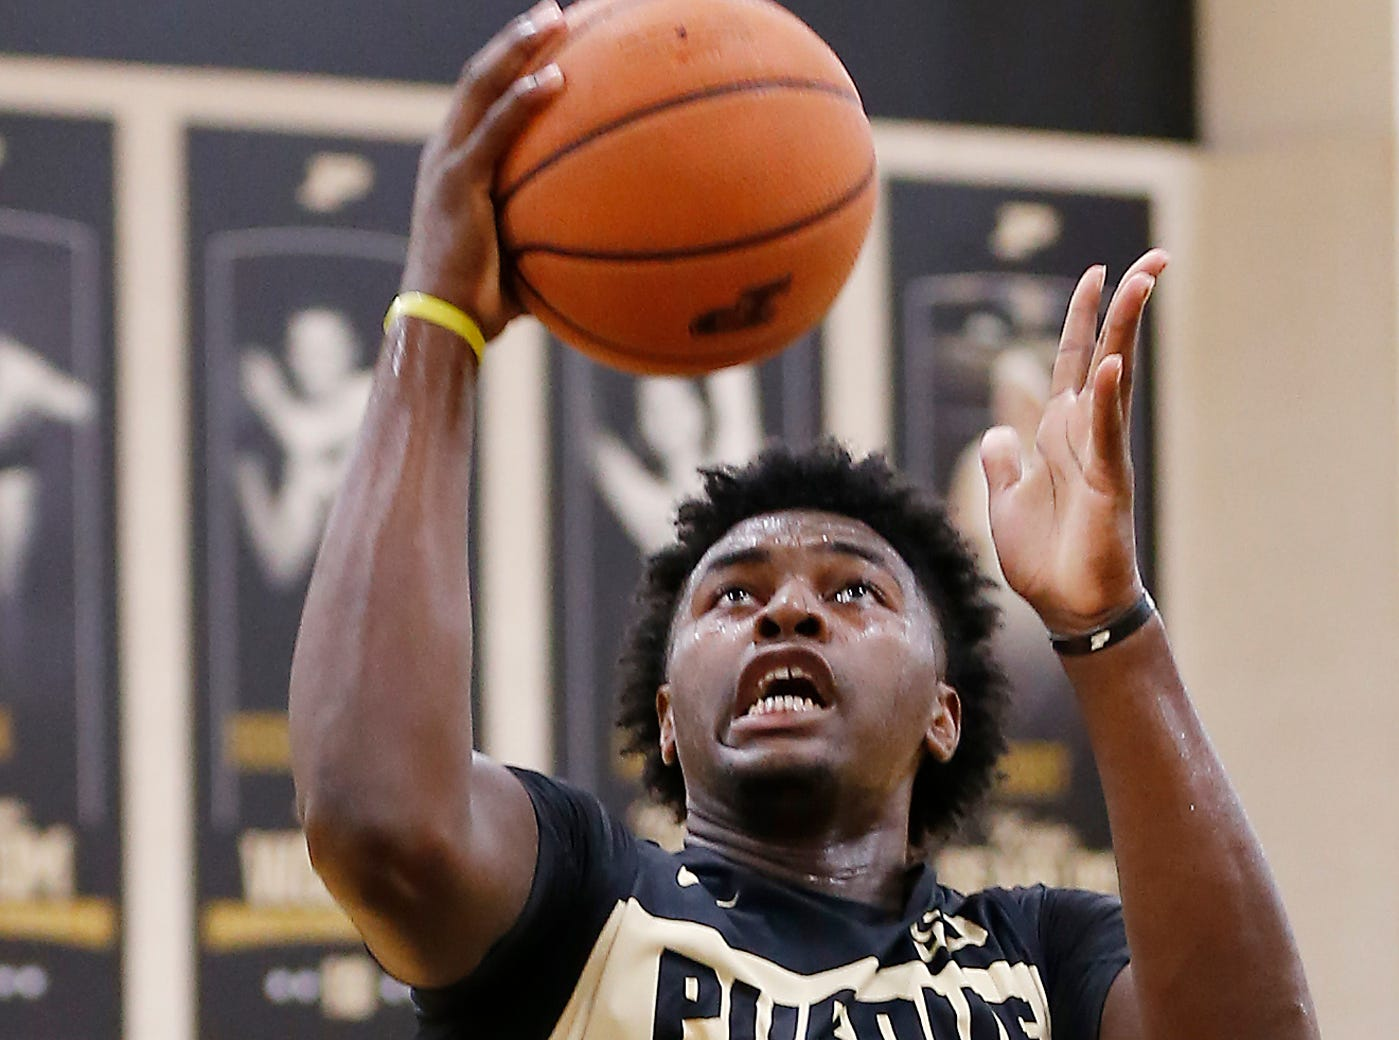 Trevion Williams with a layup during the first official practice of the season for Purdue men's basketball Tuesday, September 25, 2018, at Cardinal Court in Mackey Arena.